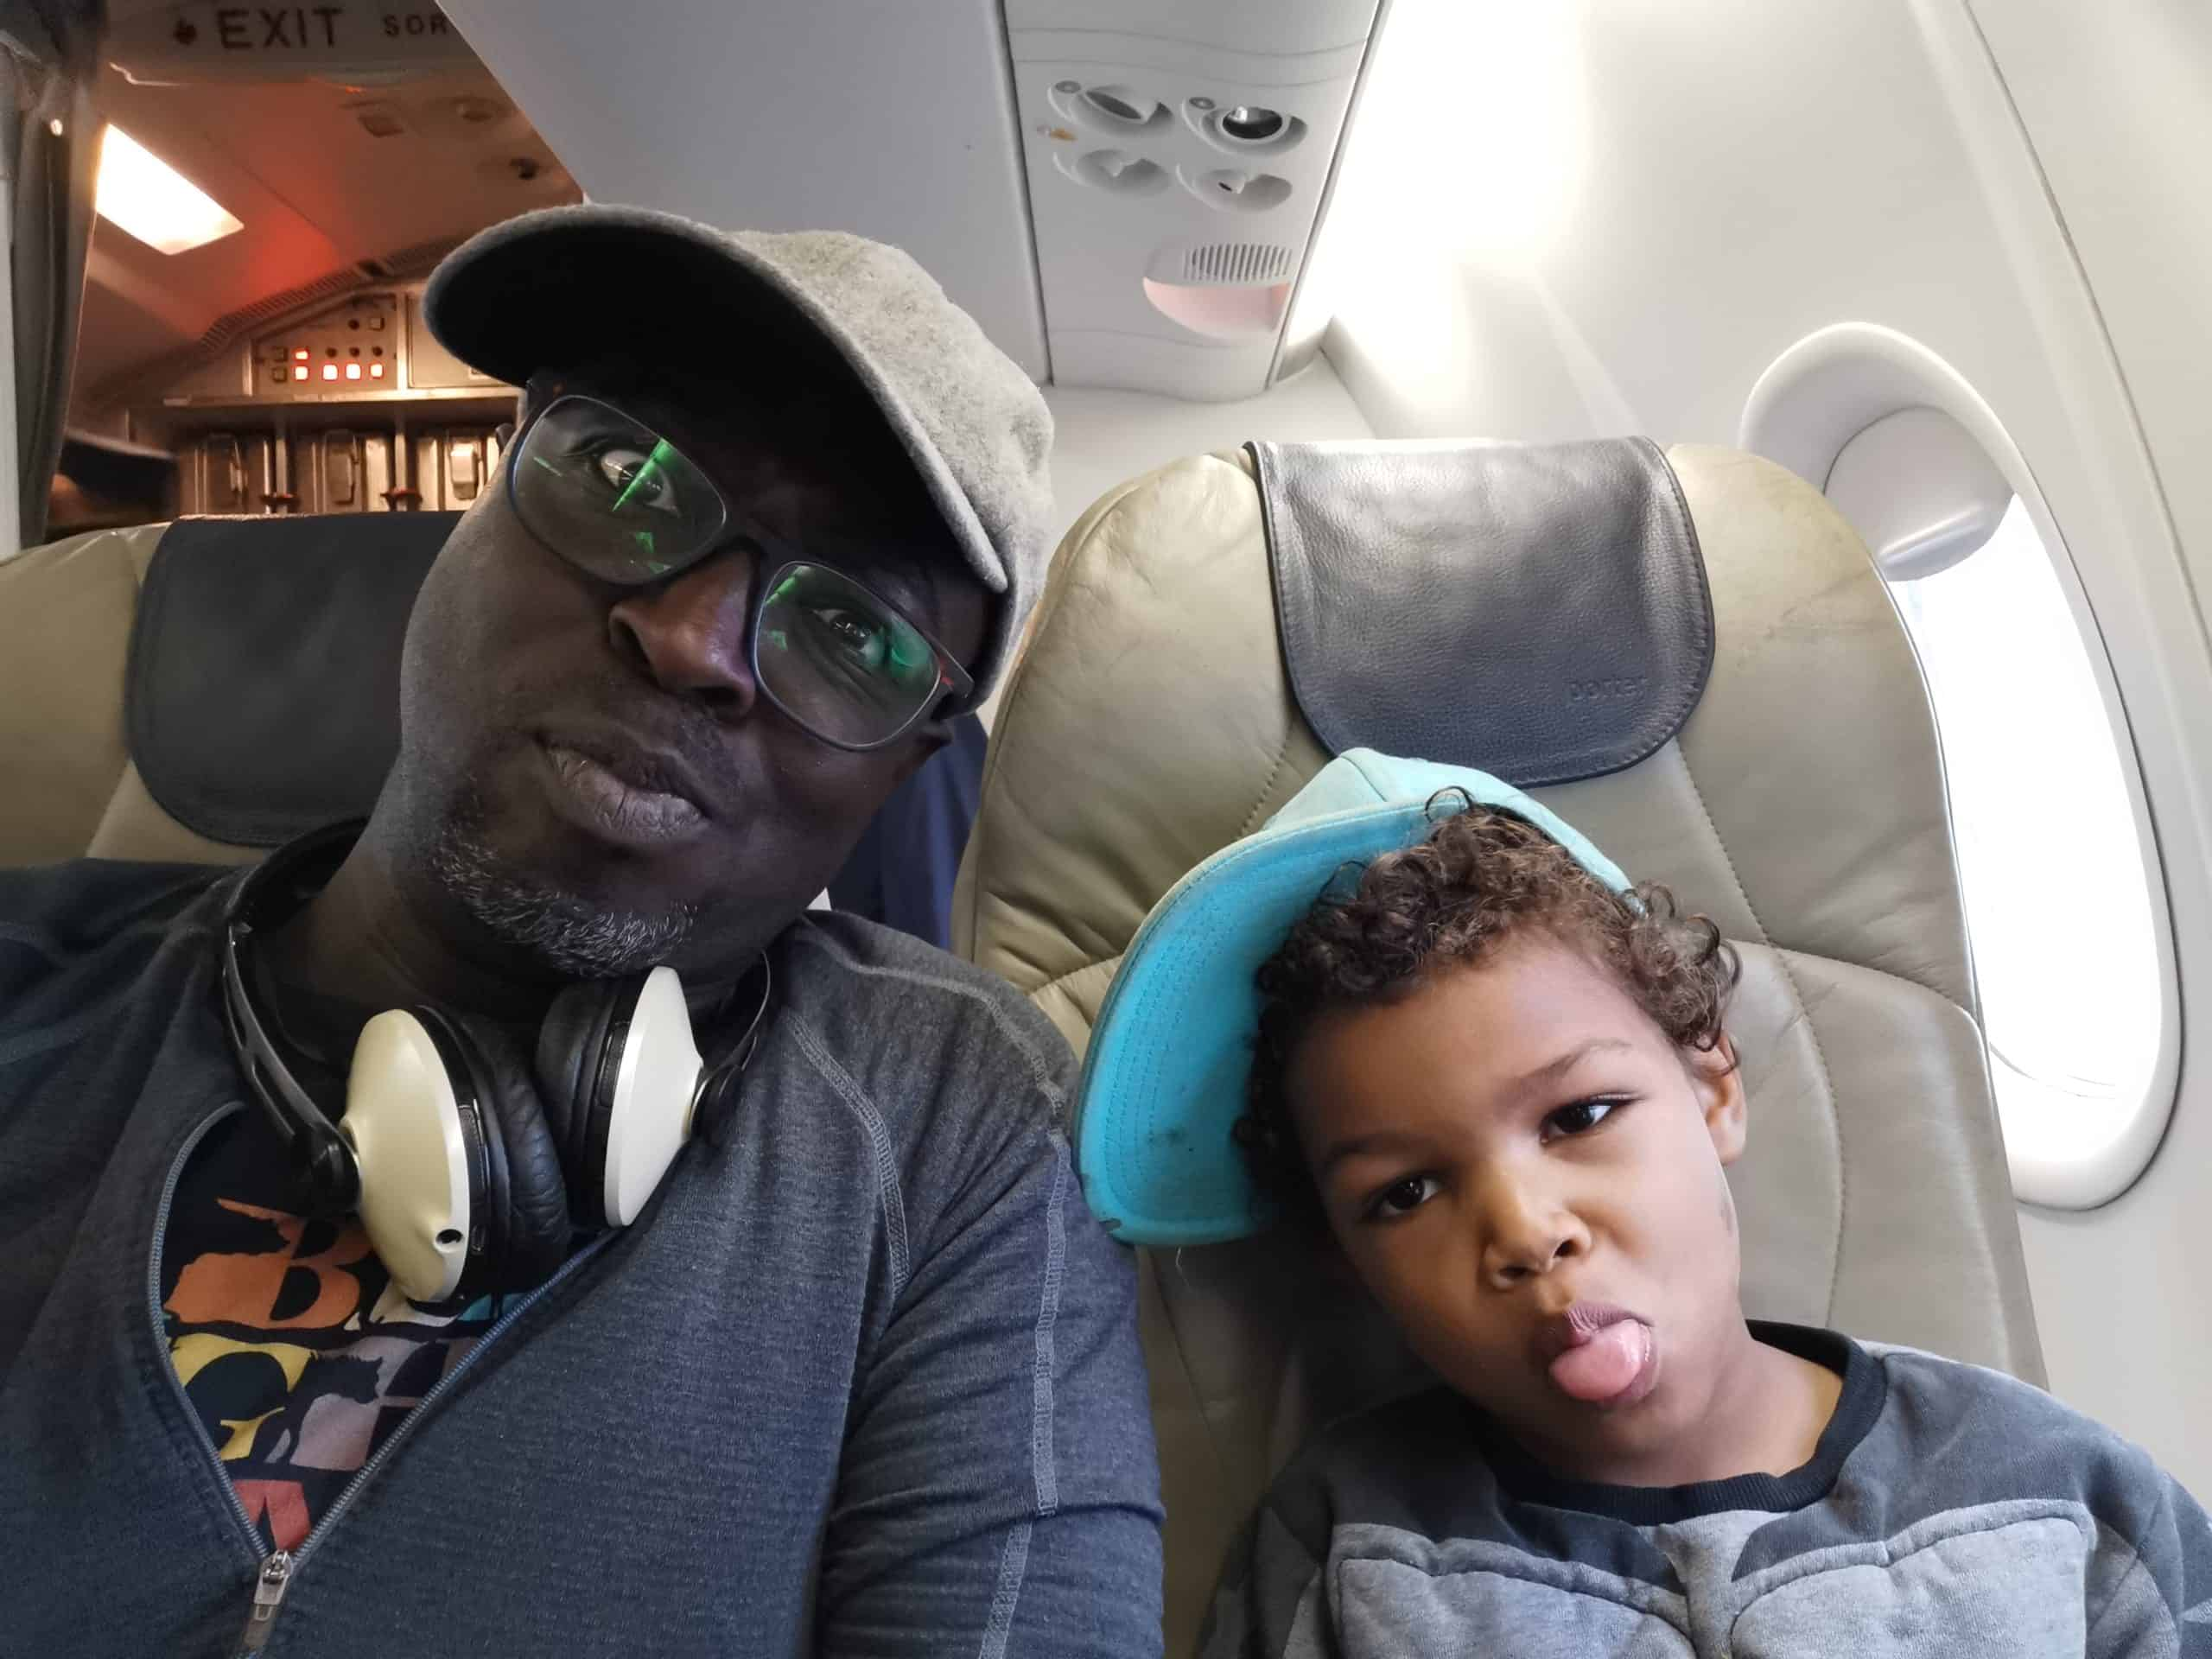 Casey and his son on a plane